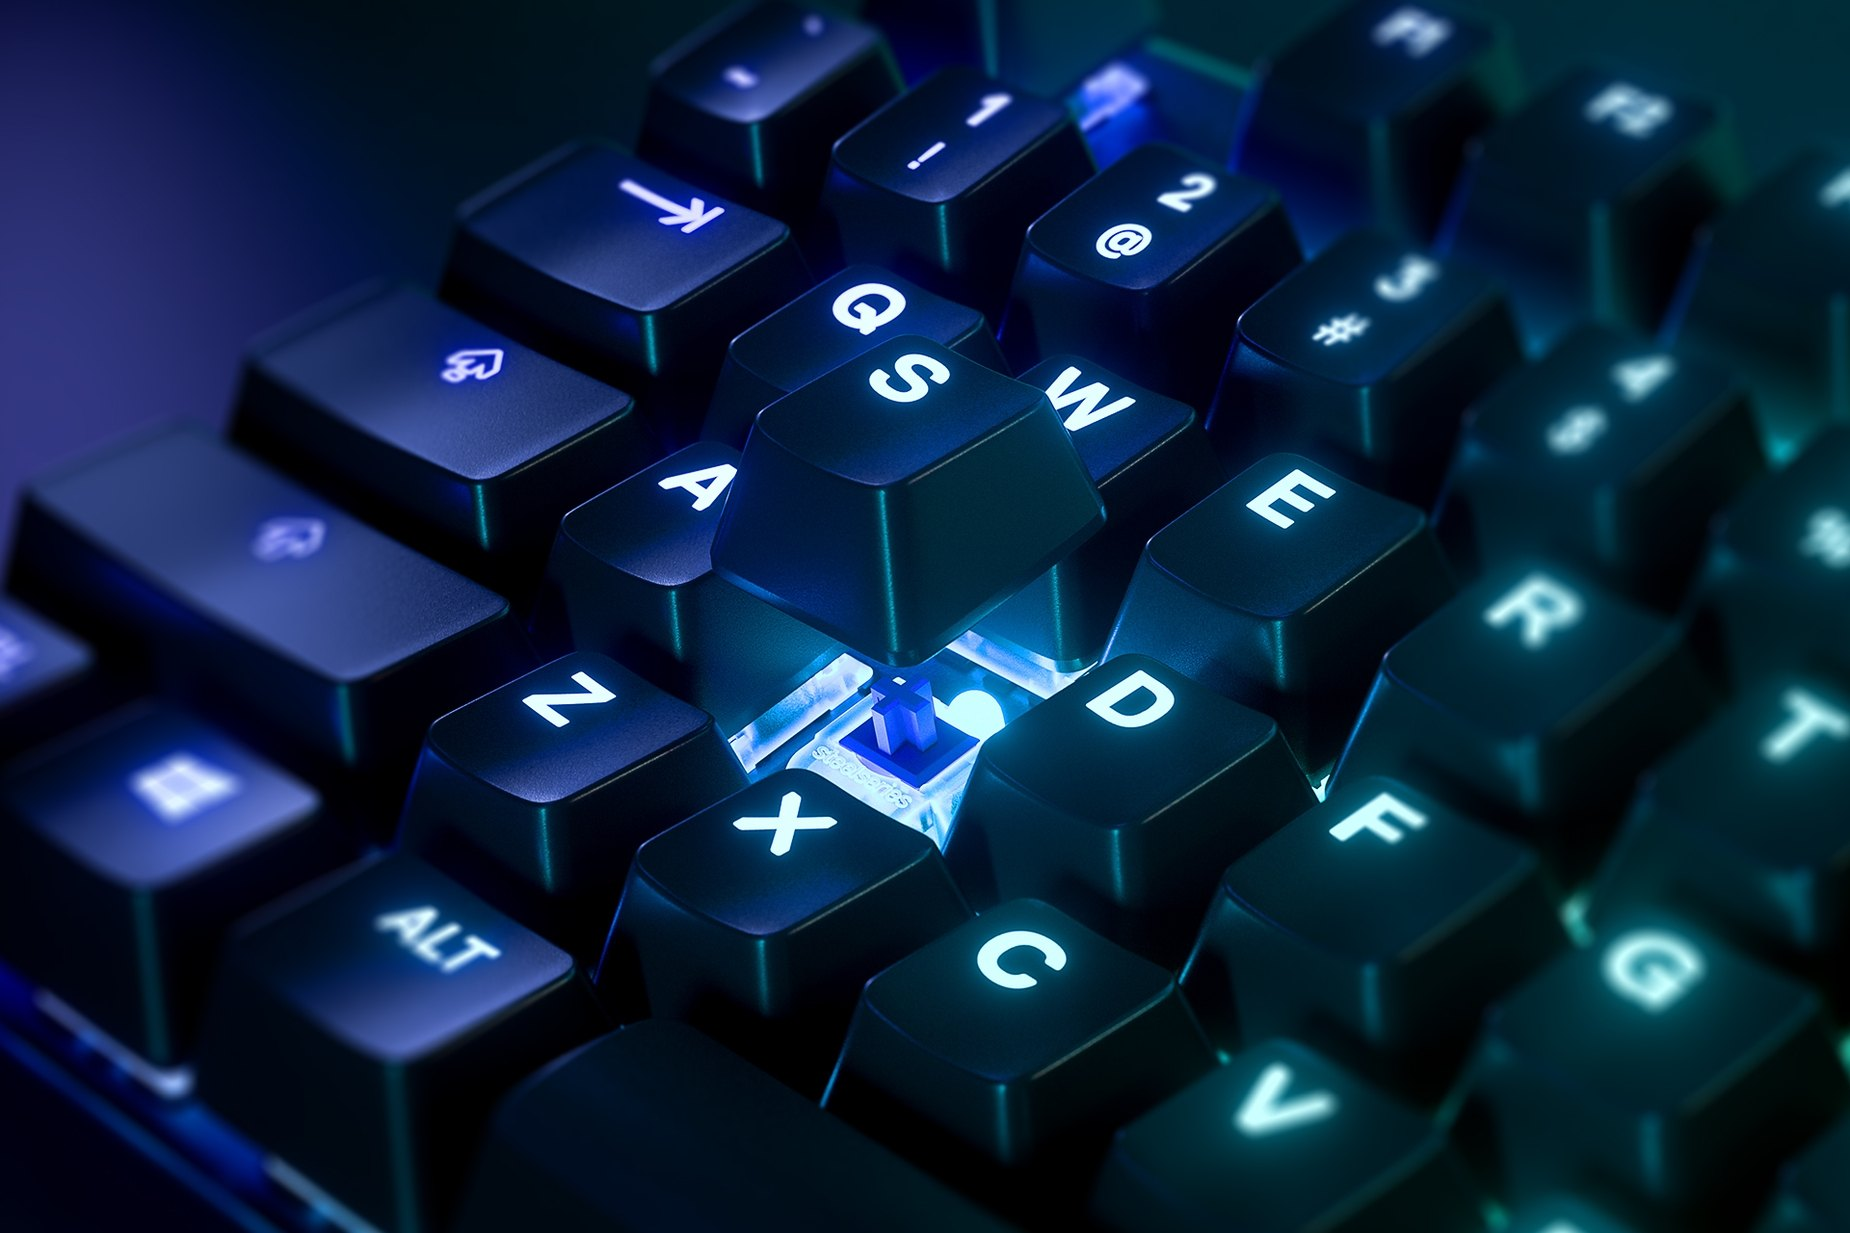 Zoomed in view of a single key on the Thai - Apex 7 (Blue Switch) gaming keyboard, the key is raised up to show the SteelSeries QX2 Mechanical RGB Switch underneath